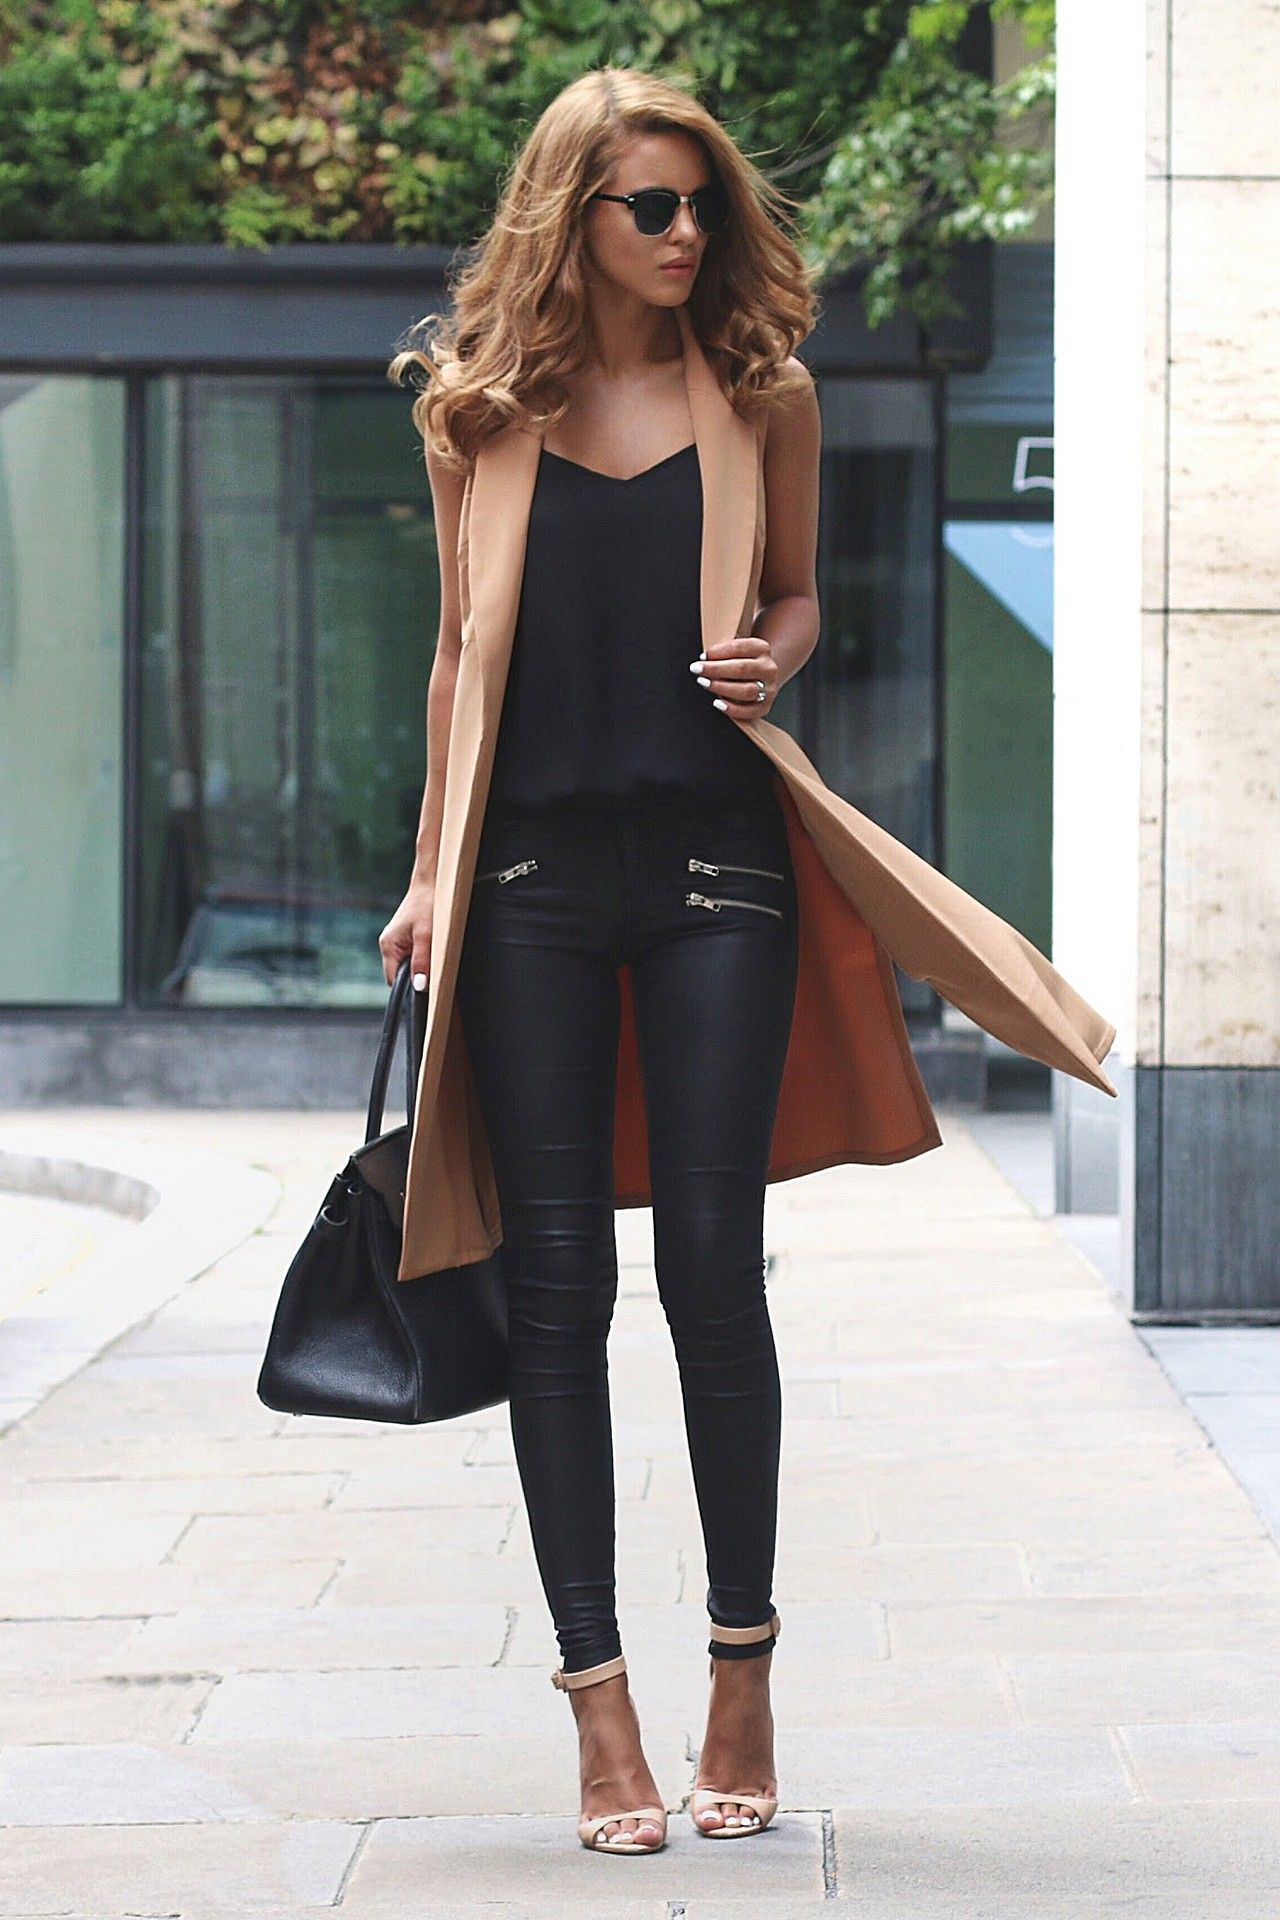 Beautiful long legs clothes pinterest longest legs legs and